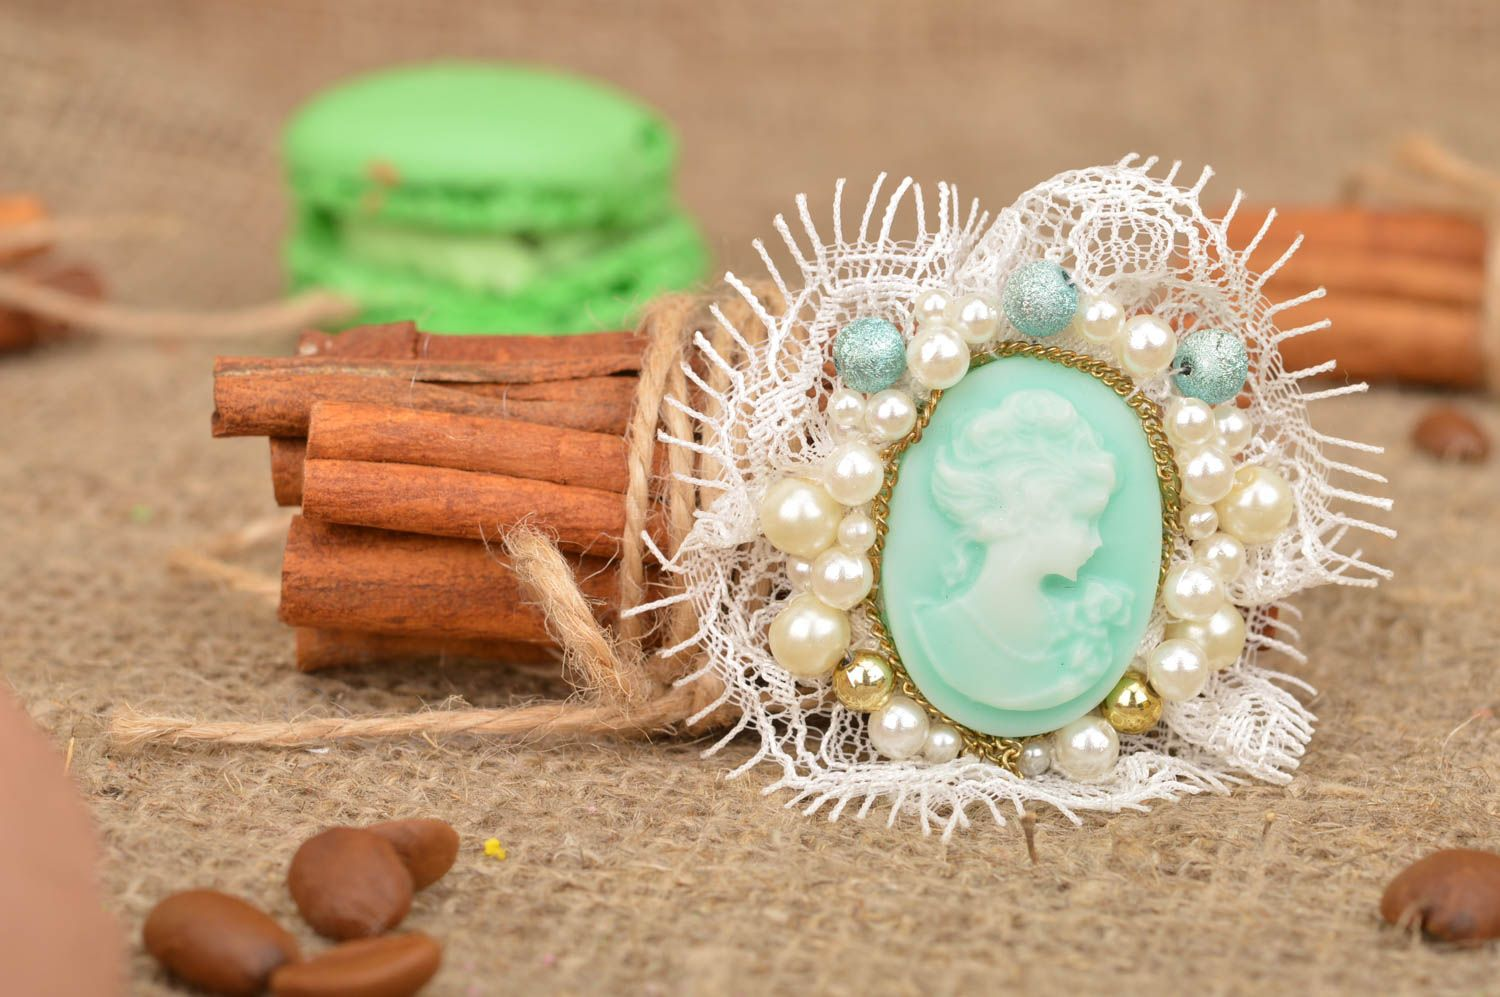 Handmade mint-colored cameo brooch with white lace accessory for women photo 1